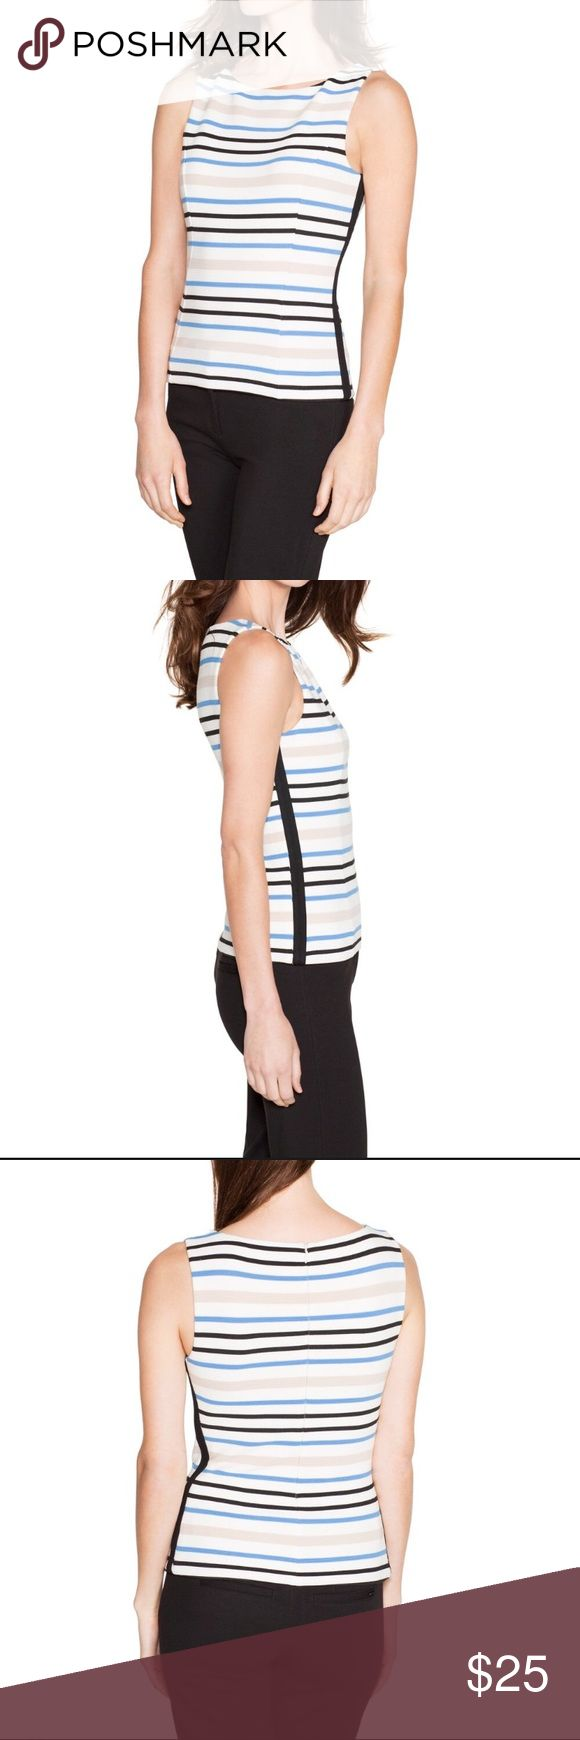 "BRAND NEW!!!!! WHBM SLEEVELESS STRIPED BODICE TOP BRAND NEW NEVER WORN!!! Start with a sleek foundation in our striped bodice topped with a bateau neck and slimming seams down either side. Match back for a perfect pair with our striped ponte pencil skirt. Sleeveless bodice top Back zip; hook and eye close Polyester/rayon/spandex. Machine wash, cold. Approx. 22.5"" from shoulder. White House Black Market Tops"